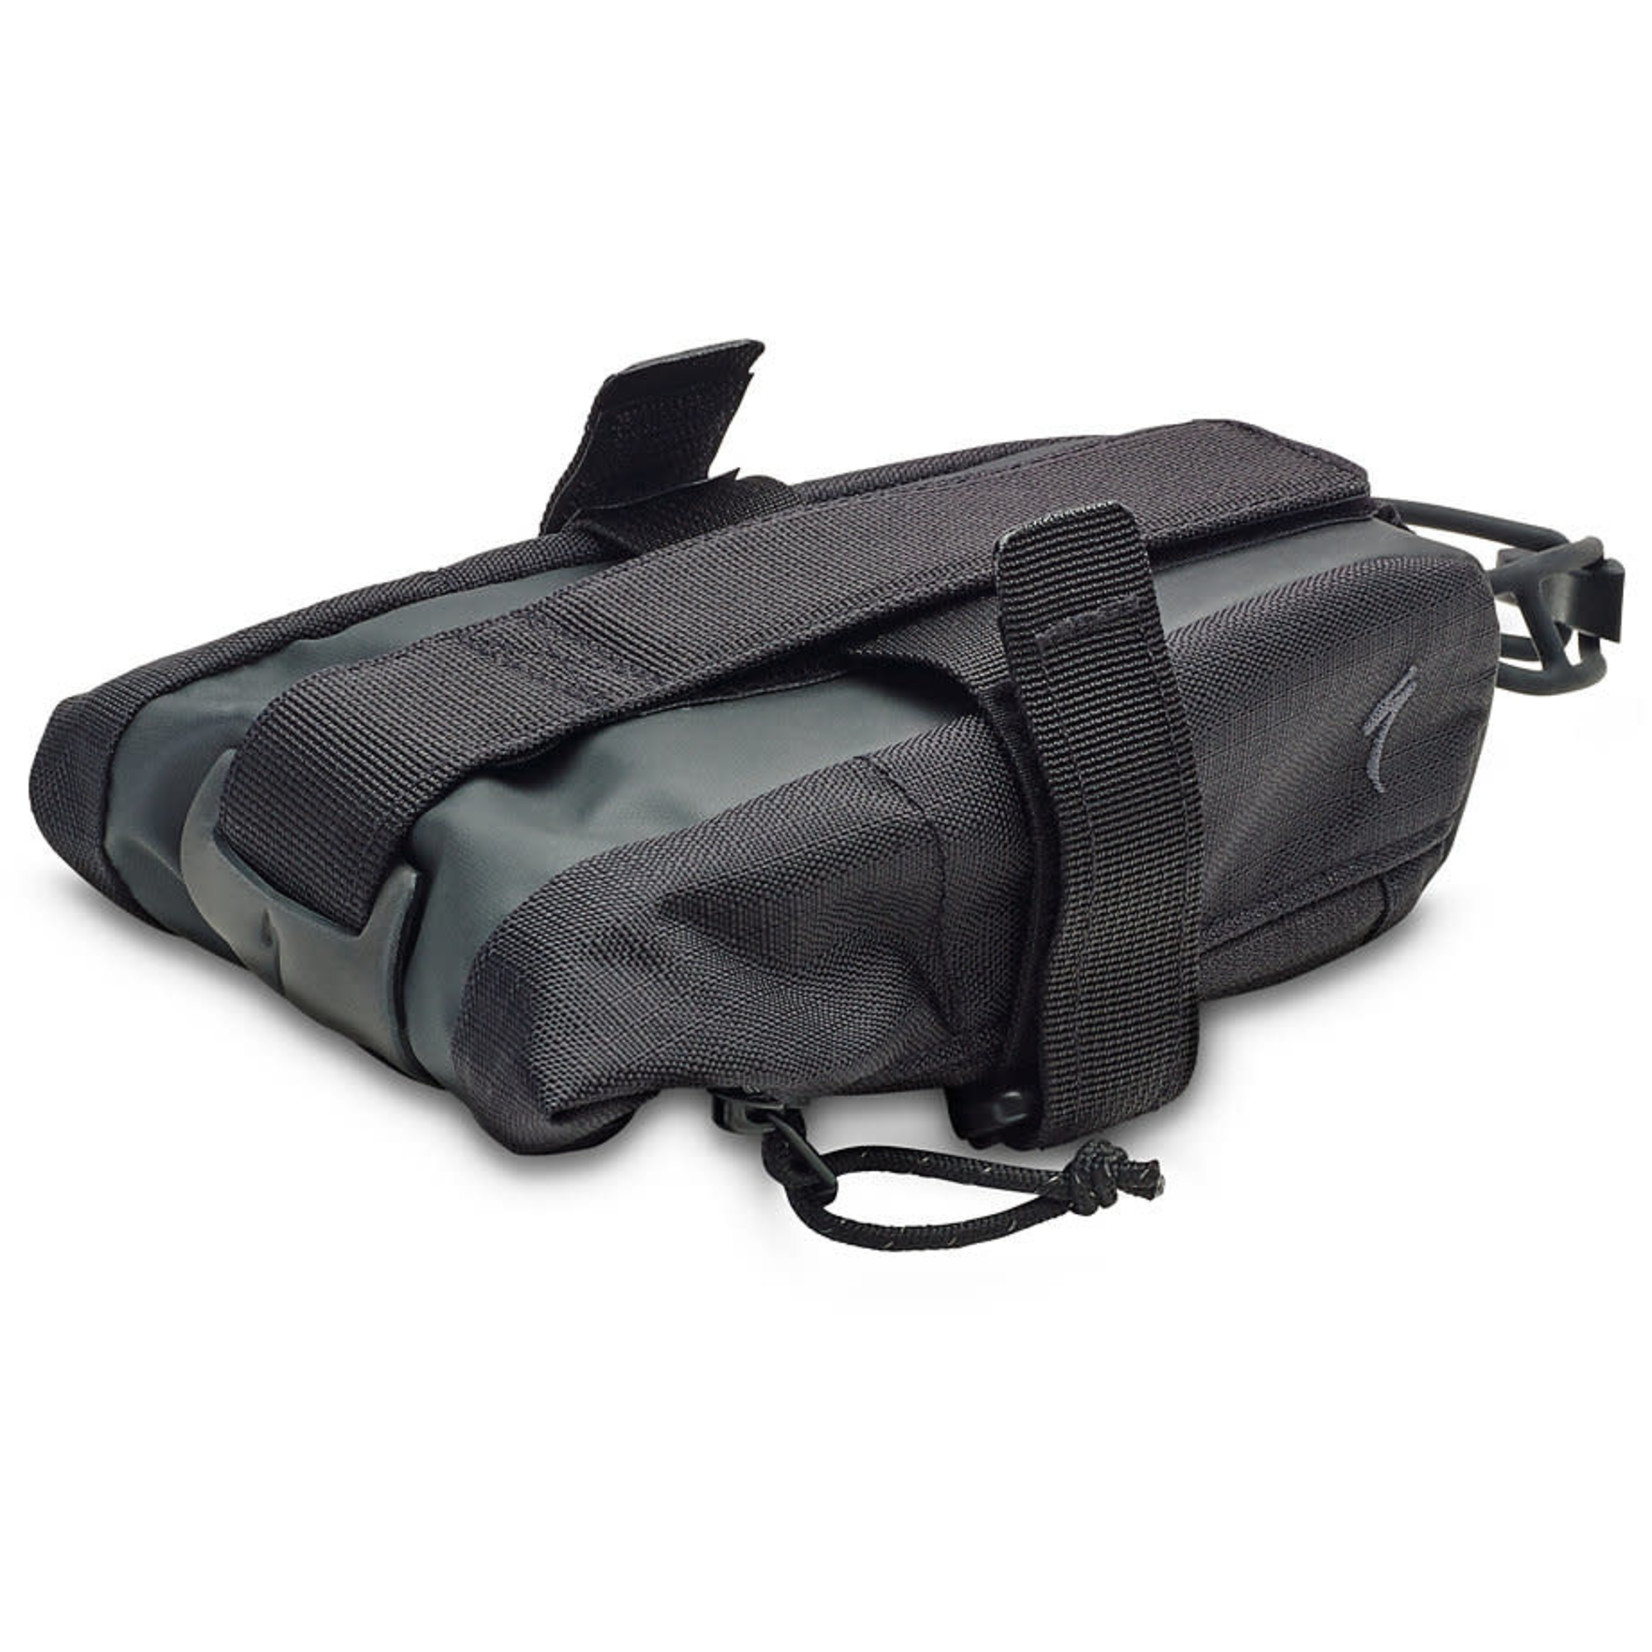 Specialized Specialized Seat Pack Large